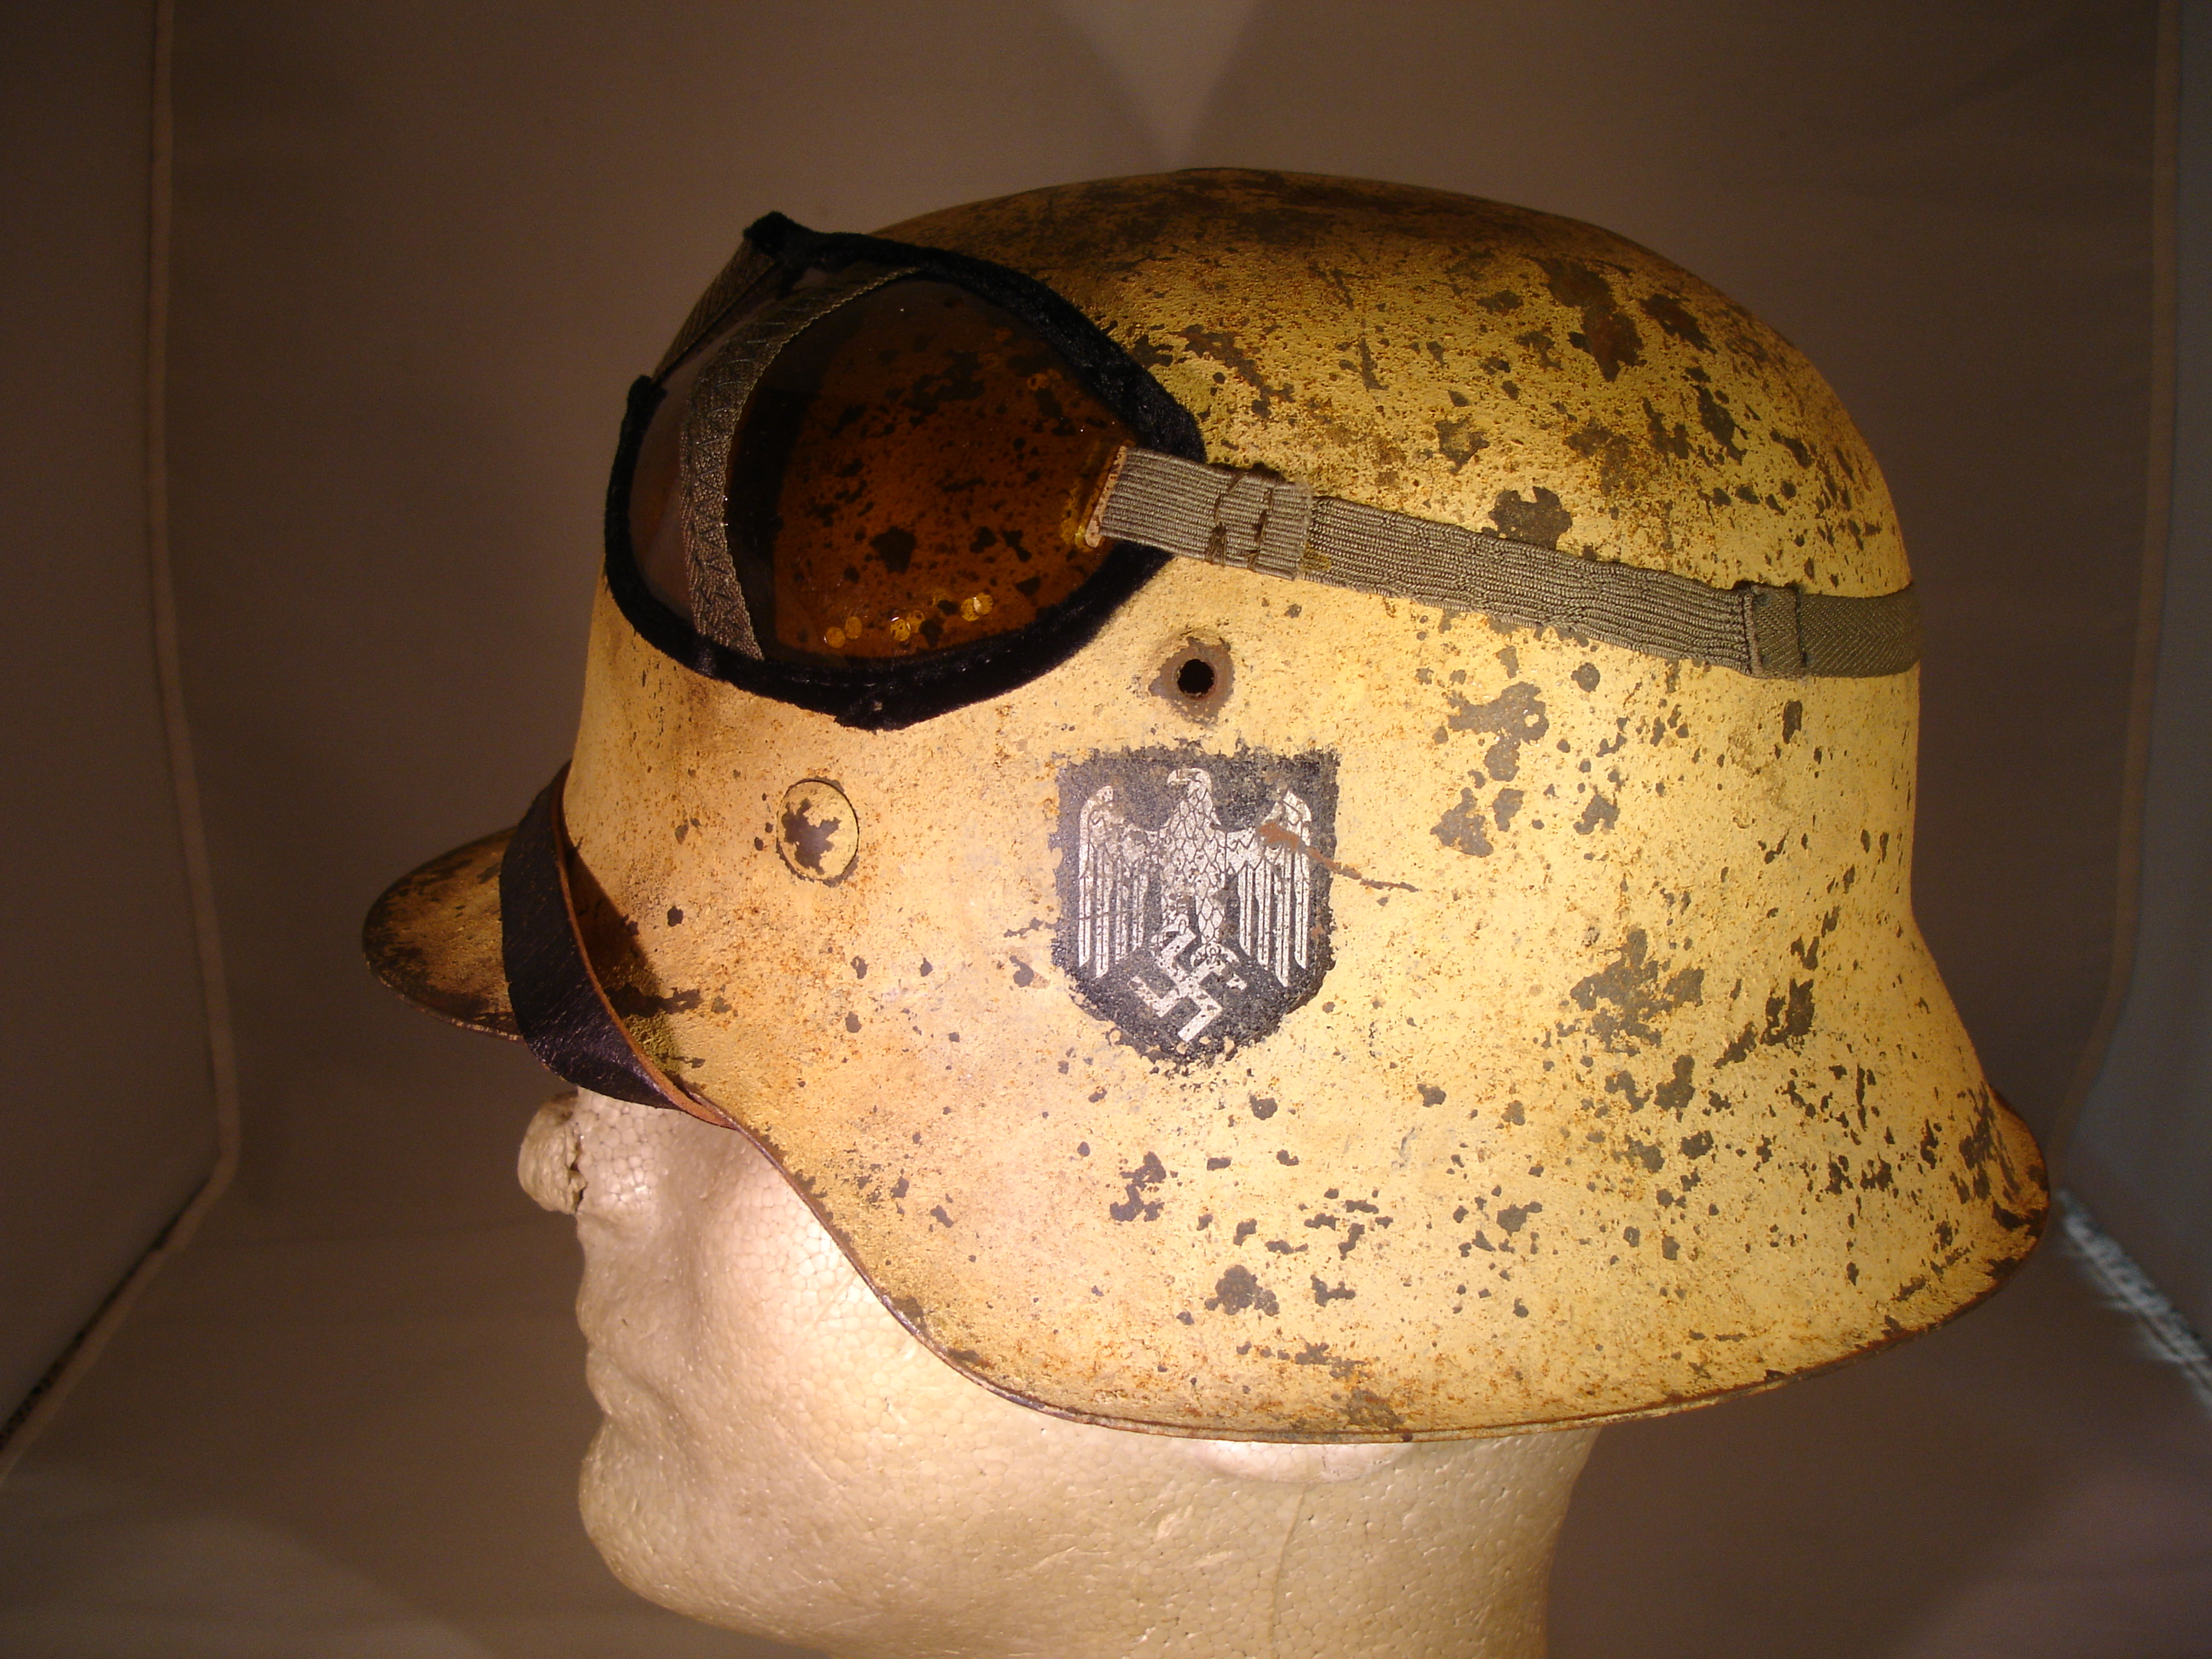 AFRIKA KORPS ARMY CAMO M42 HELMET WITH GOGGLES